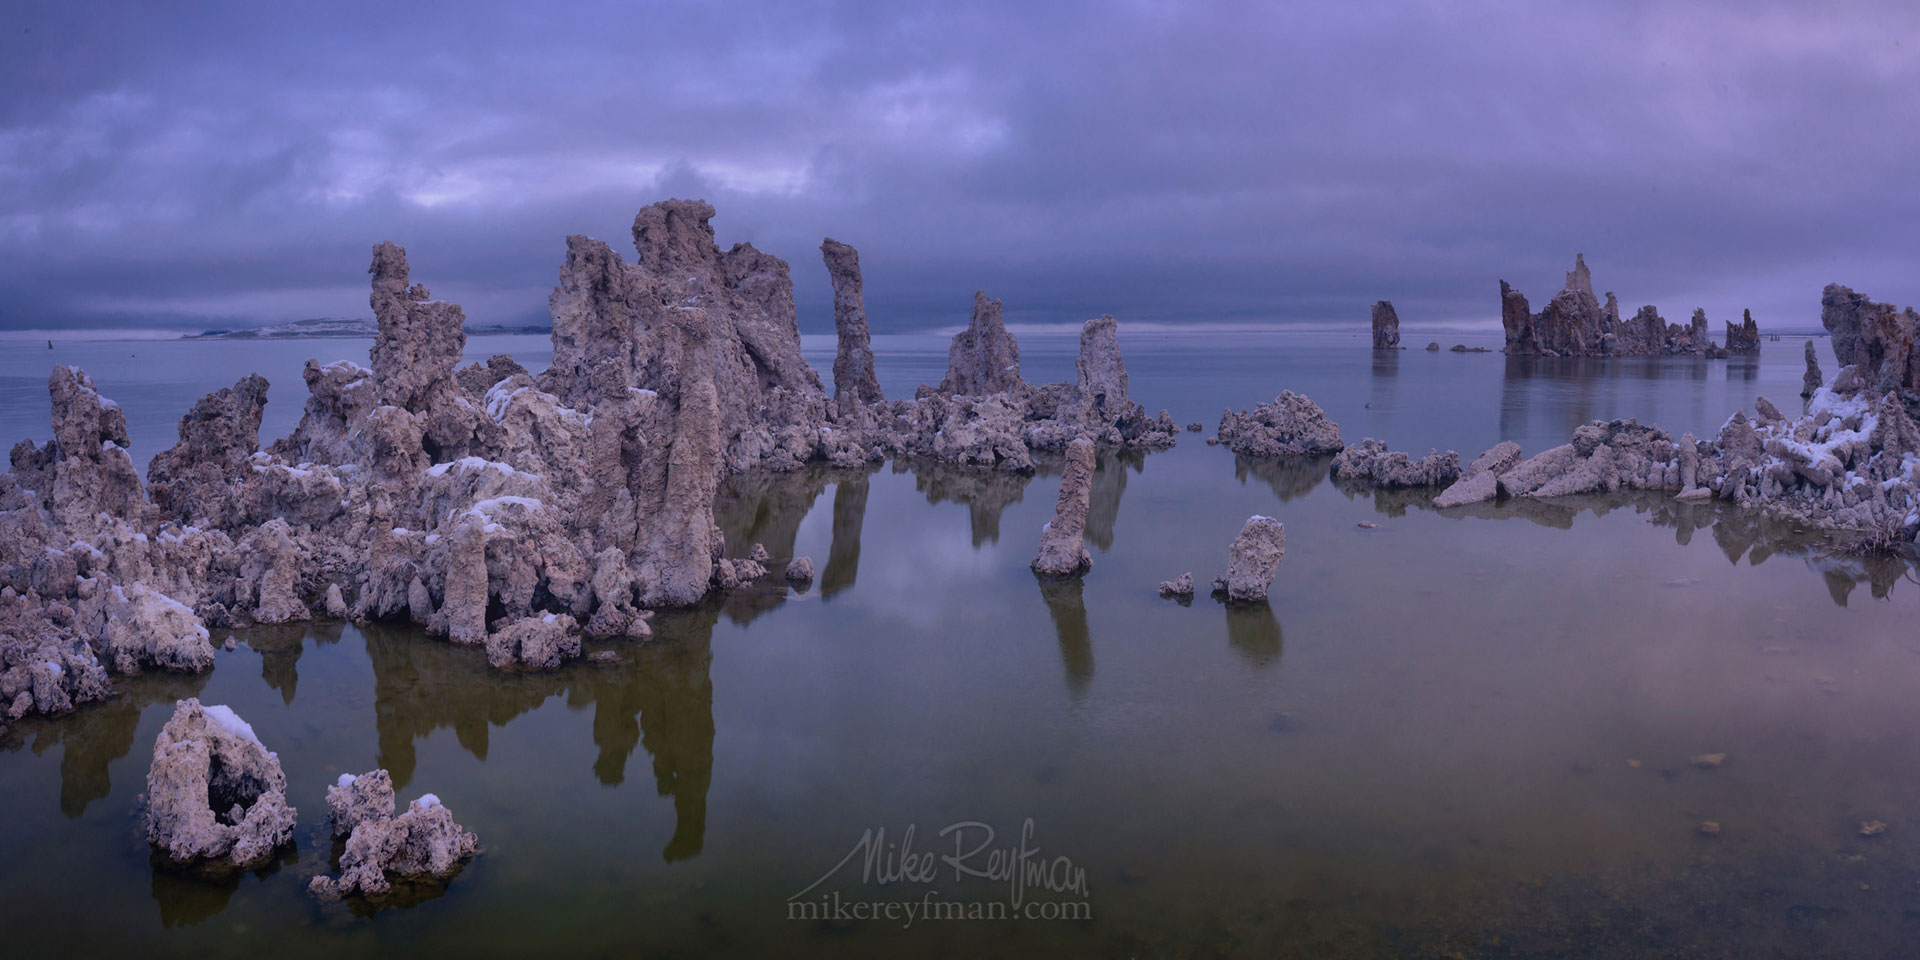 Mono Lake, Tufa State Natural Reserve, Eastern Sierra, California, USA ML1-MRN3X0708-09-Pano - Mono Lake Tufa State Natural Reserve, Eastern Sierra, California - Mike Reyfman Photography